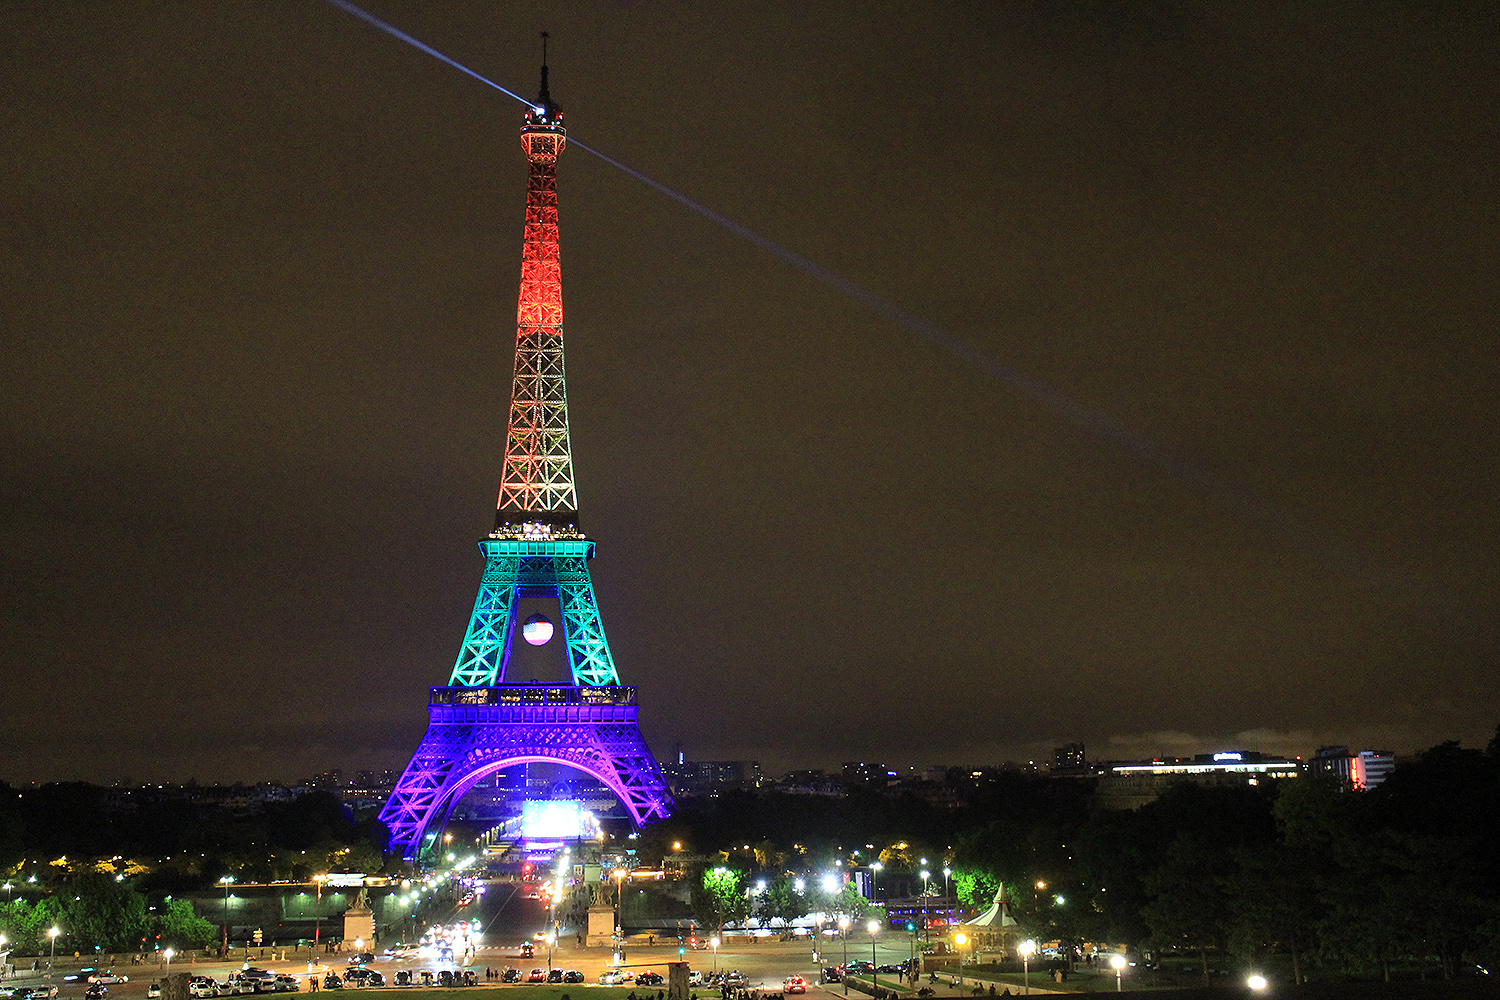 """Love is Love"" by Julie Schwartz, '19 / Paris, France ""I took this picture after the terrorist attacks in Orlando. The Eiffel Tower was lit up with the colors of the Rainbow flag in solidarity with the victims. From where I was standing, the view was breathtaking, and all I could see was how beautiful the tower looked with these colors. Some people around me were singing and lighting candles: they made me feel very hopeful for a better future. When terrible events like the one of Orlando happen, I remember this feeling I had when looking at the tower and I find hope again."""